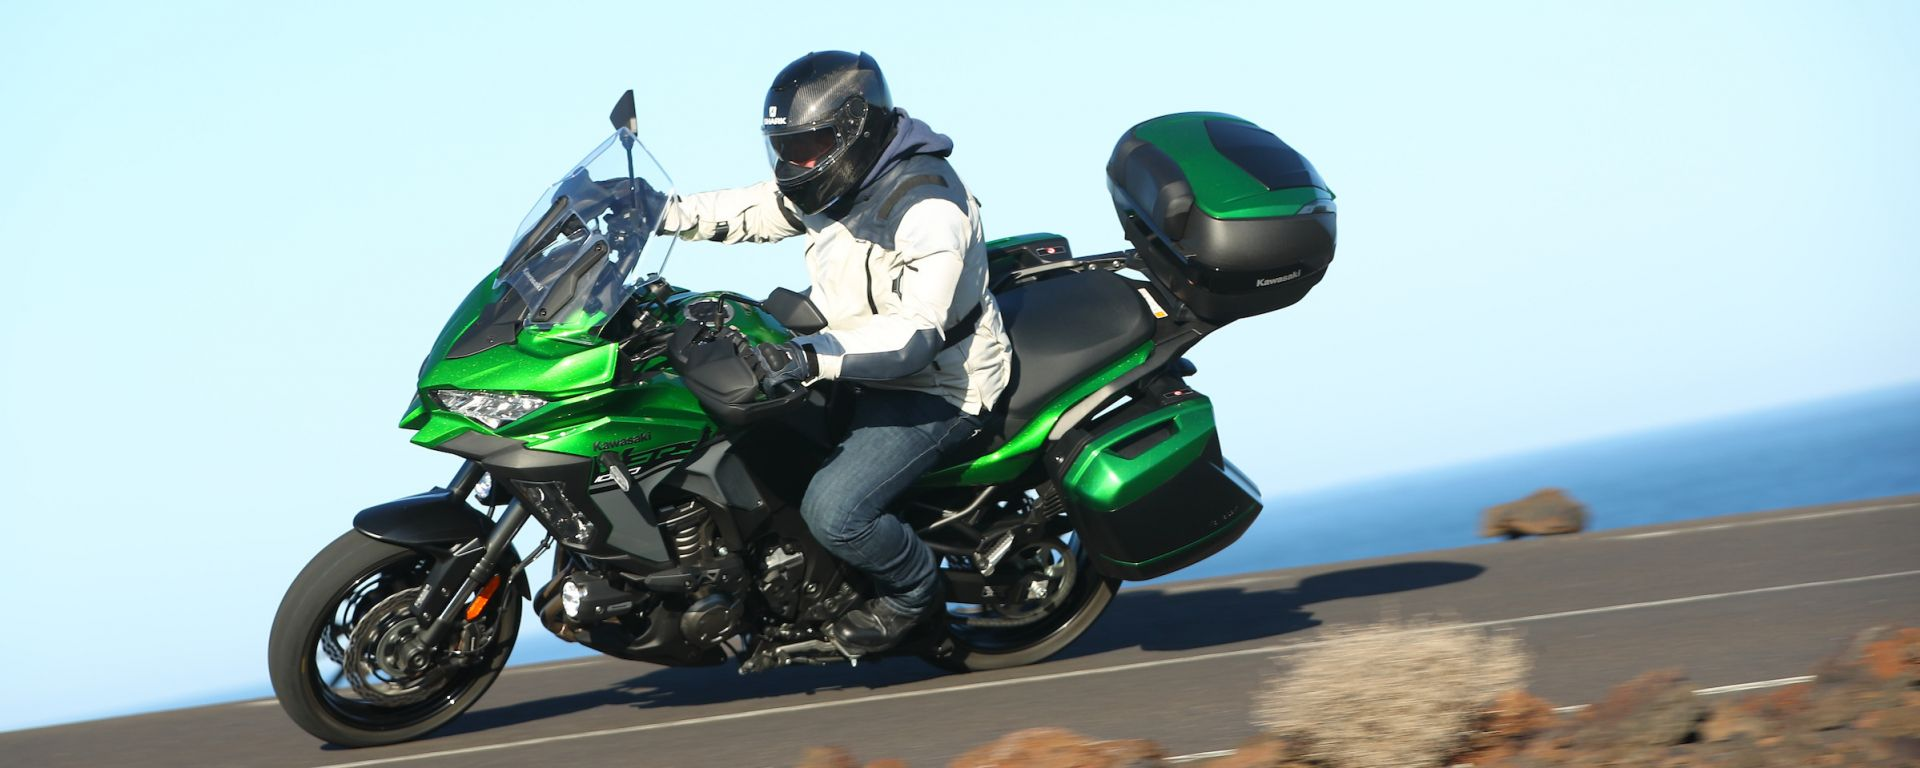 Kawasaki Versys 1000 SE: business class a due ruote! La prova